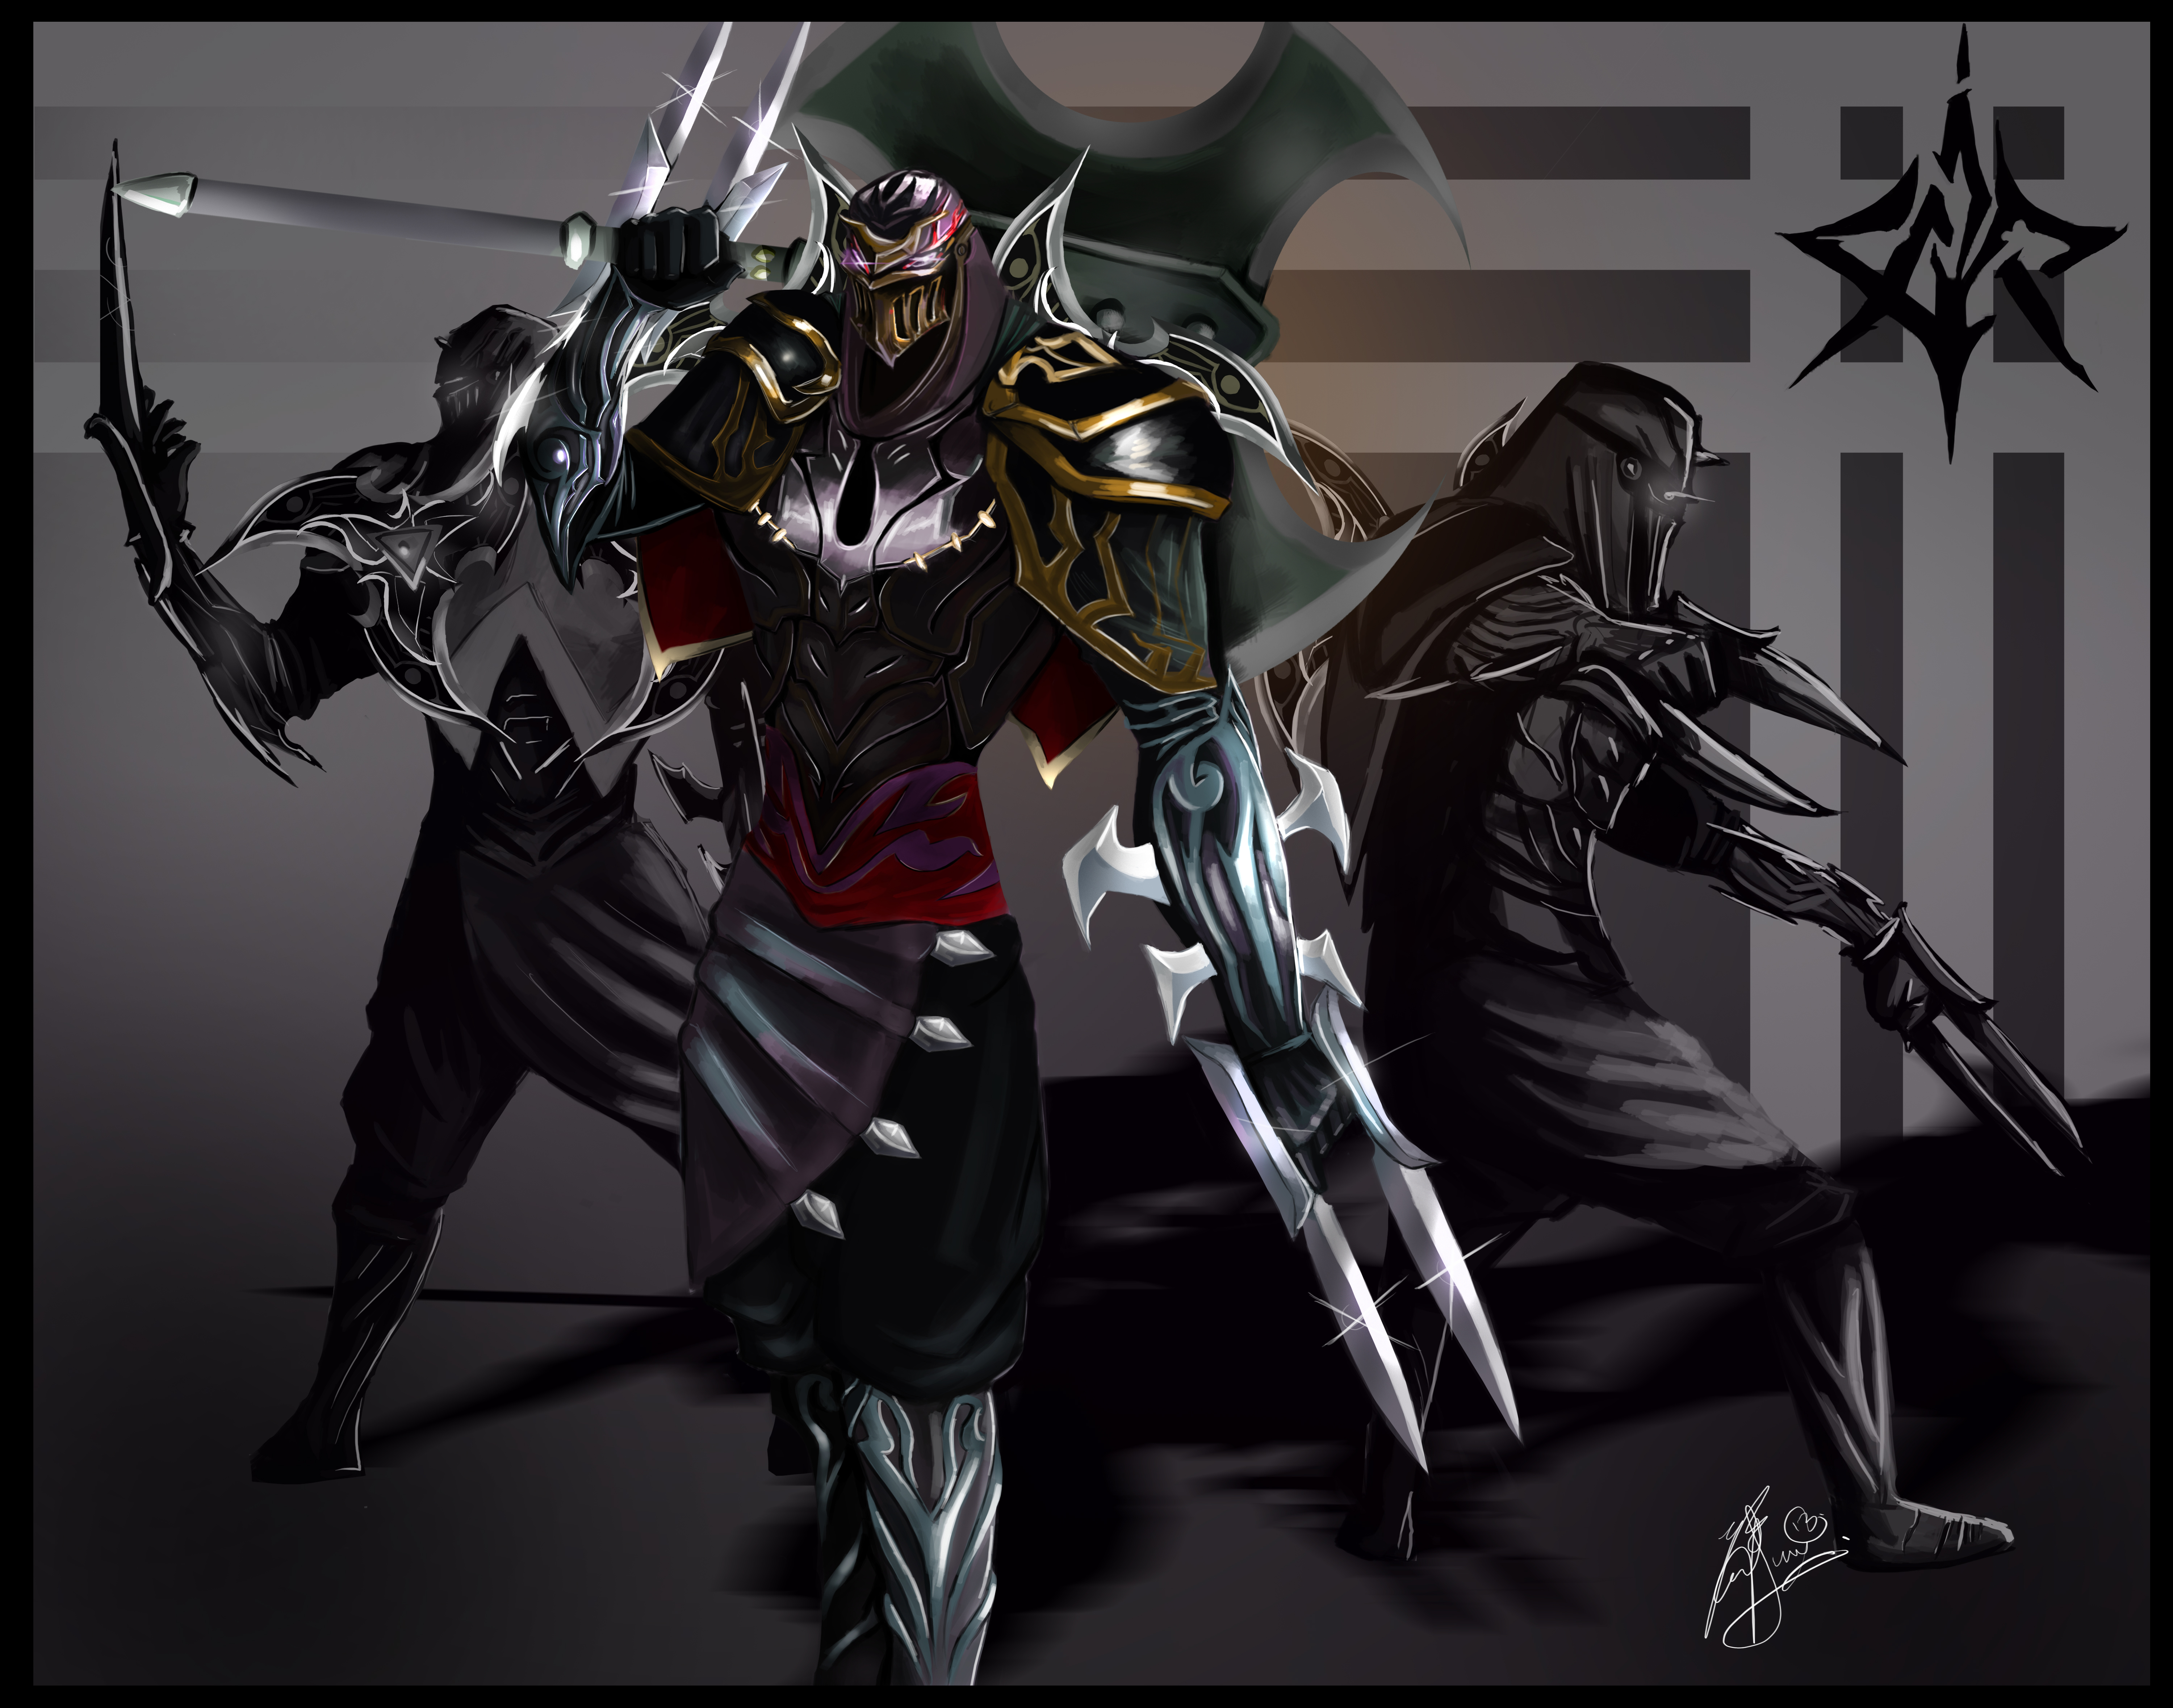 Zed by wacalac on DeviantArt